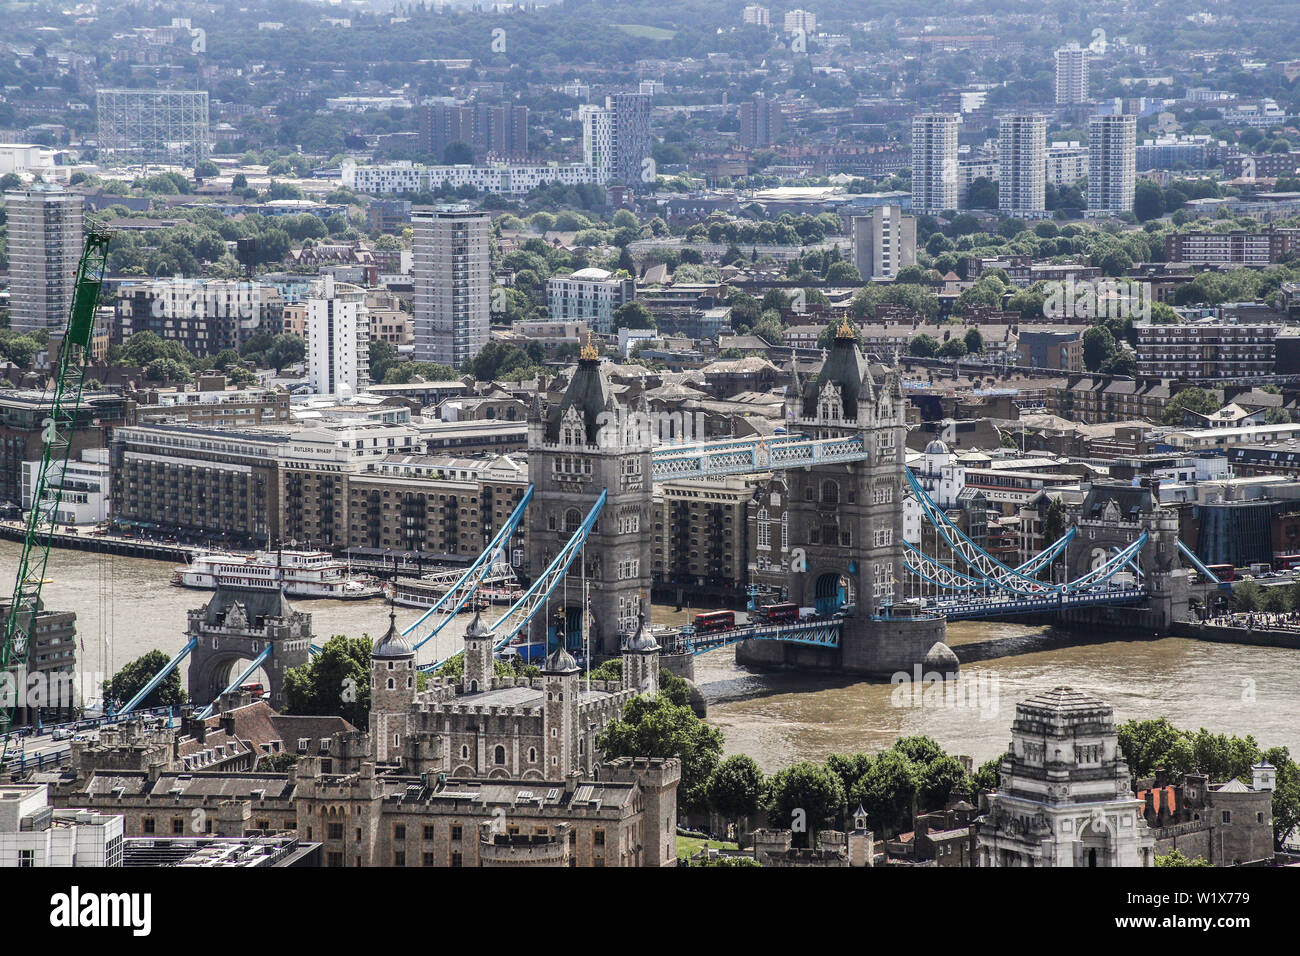 London city scapes land marks - Stock Image